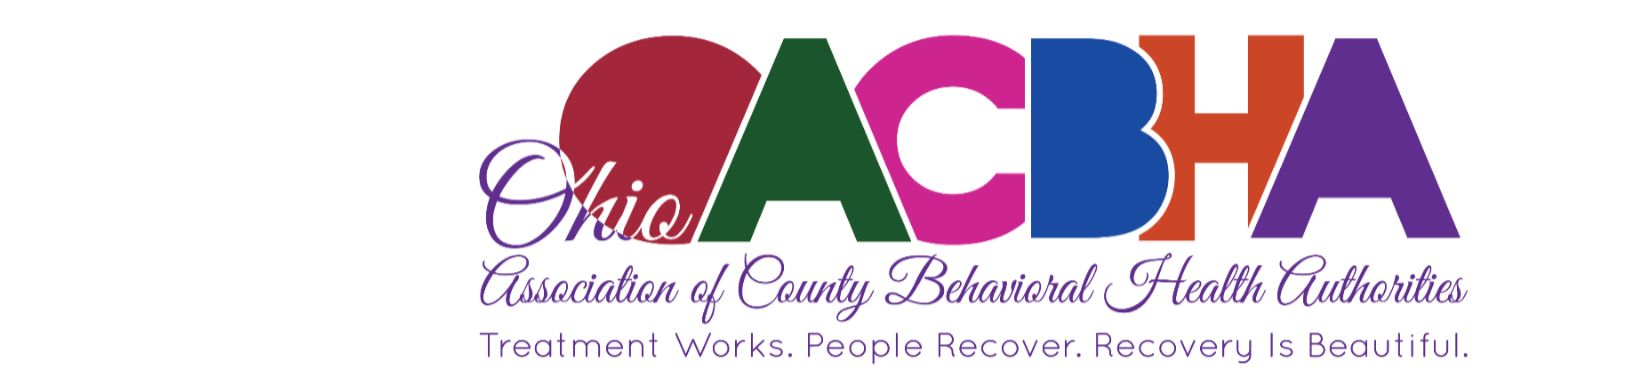 Recovery Orientated Systems of Care (ROSC) in Ohio: Statewide Assessment Results